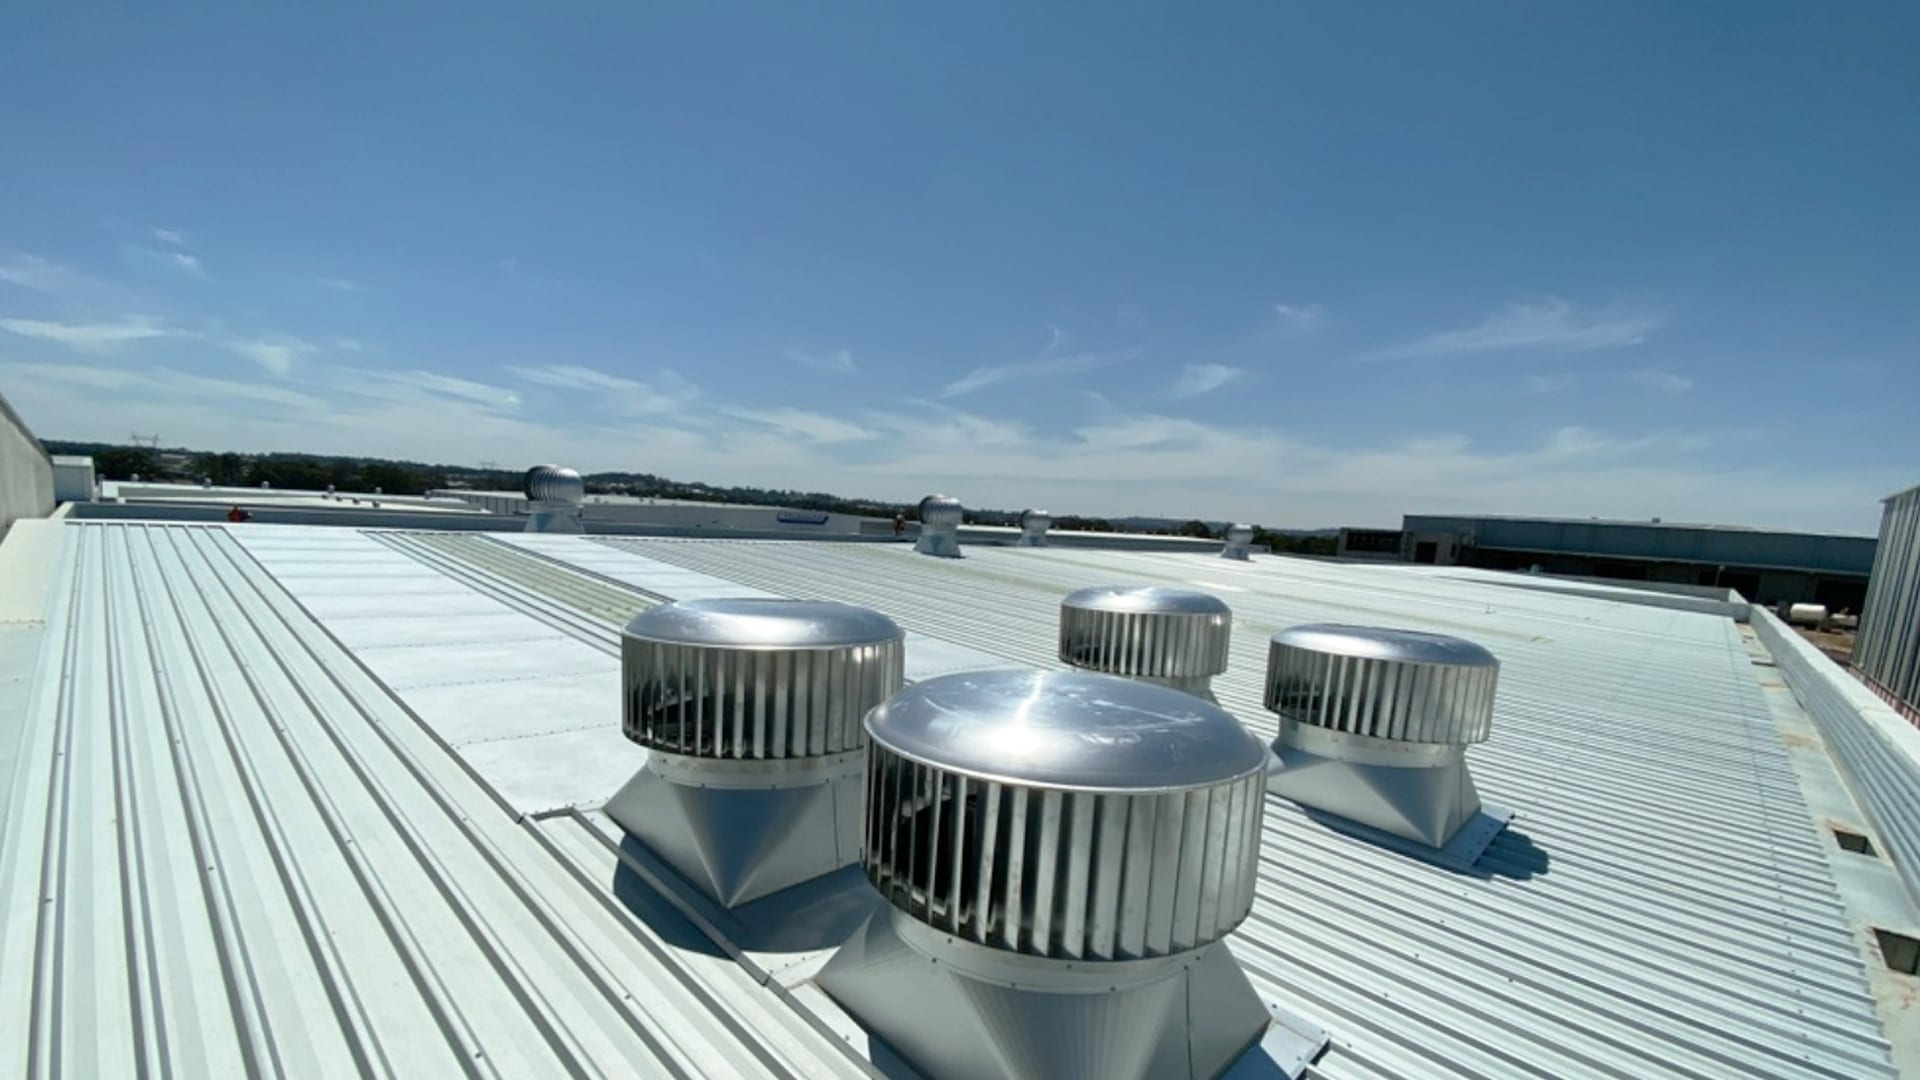 Large Commercial Roof Vents Installed for Chillex Sydney